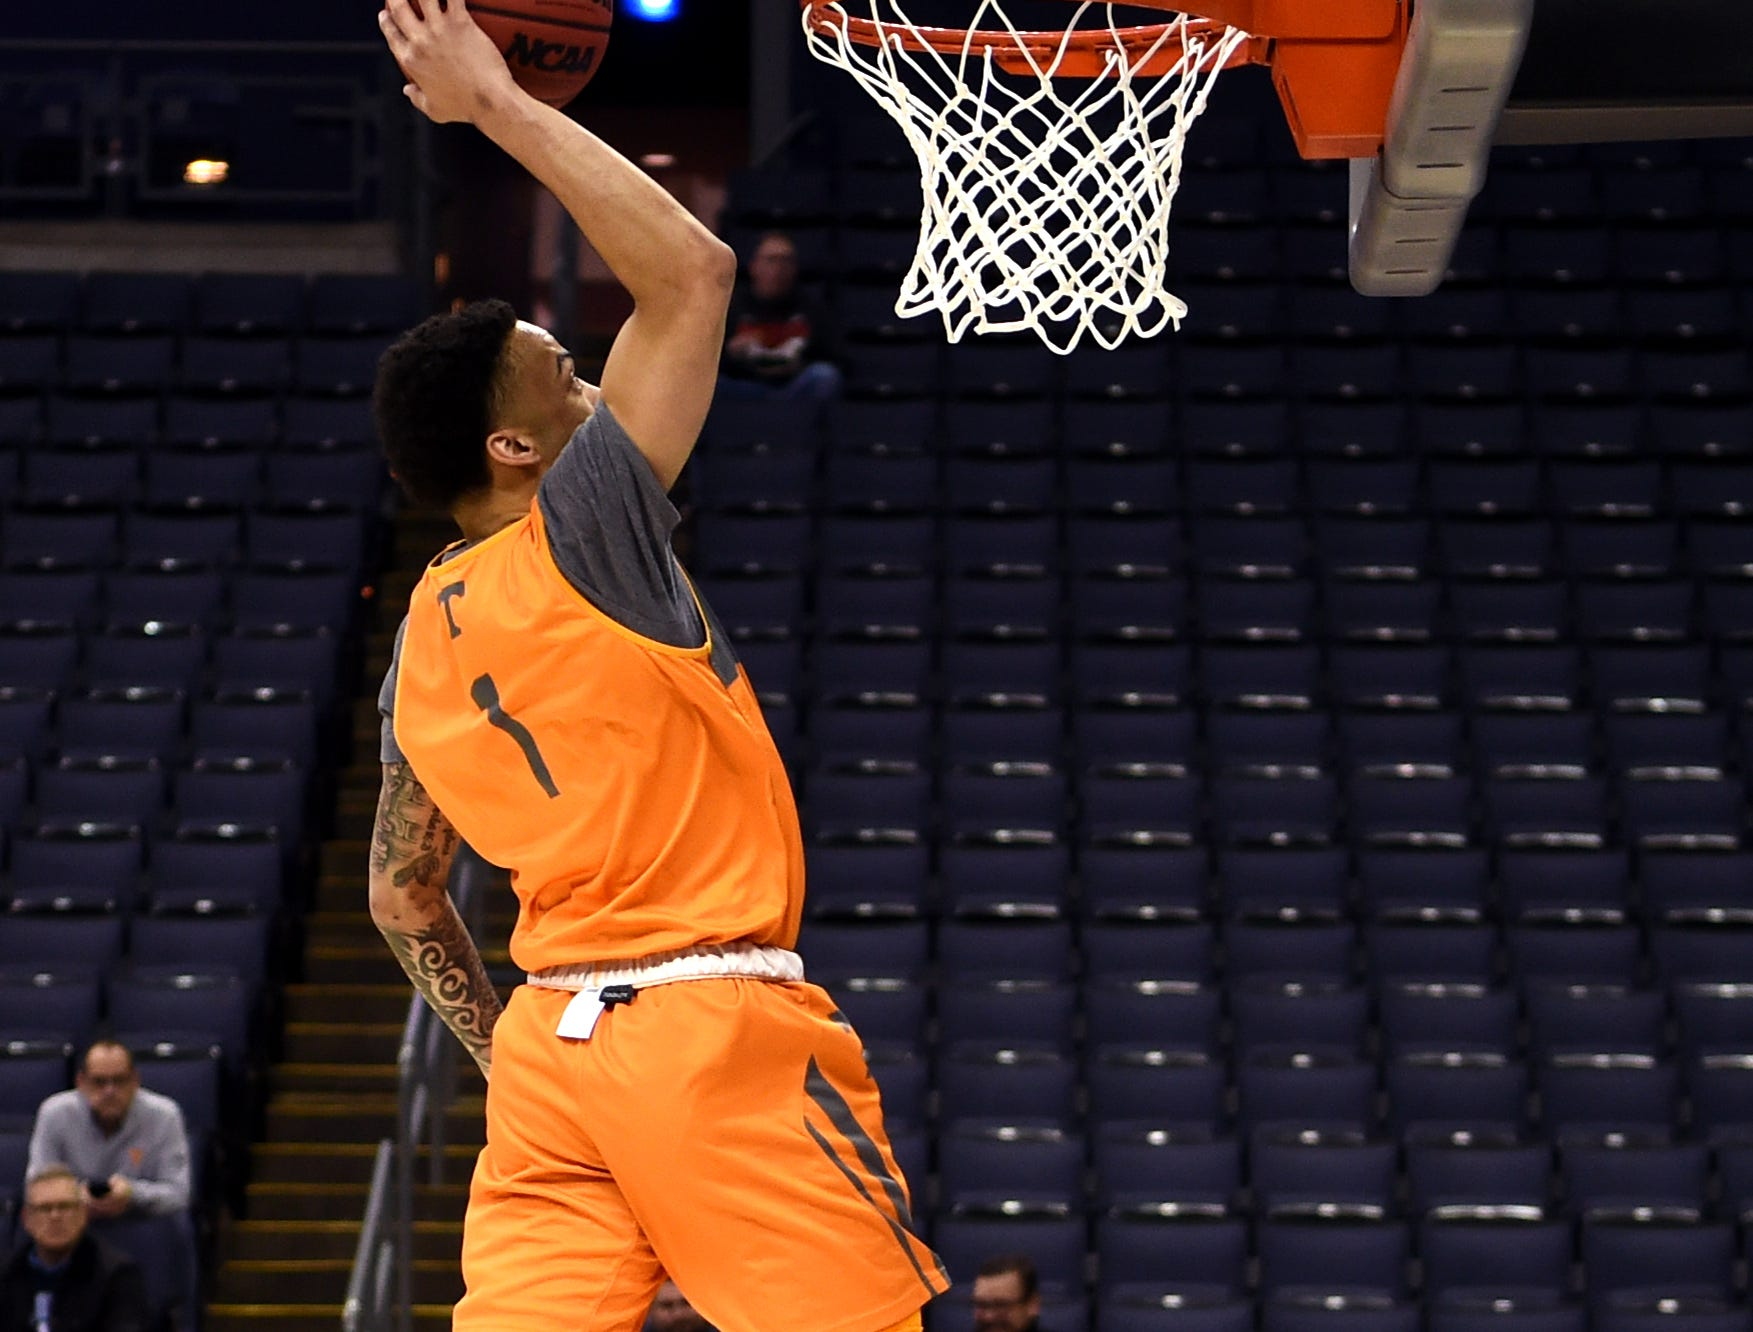 Tennessee guard Lamonte Turner (1) dunks during Tennessee's practice on Thursday, March 21, 2019, before their first round NCAA Tournament game against Colgate at Nationwide Arena in Columbus, Ohio.